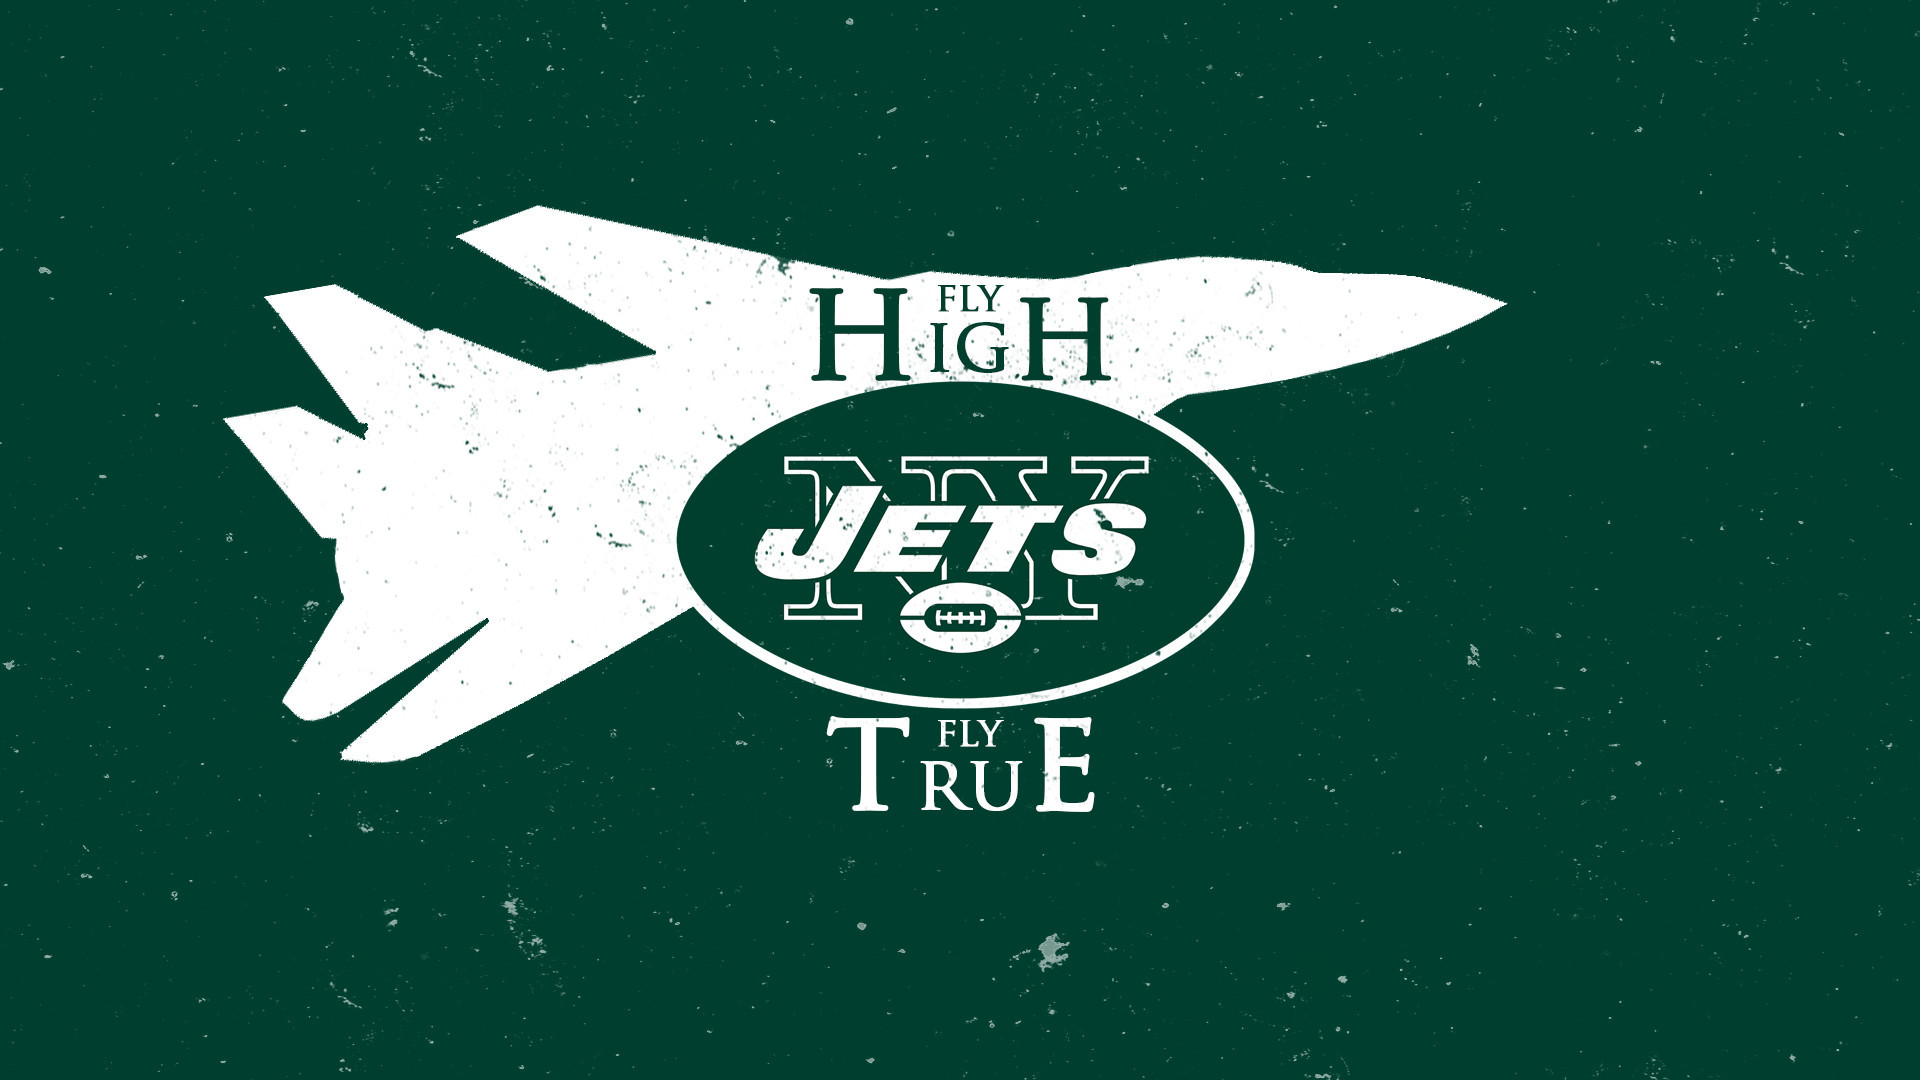 1920x1080 New York Jets NFL Wallpapers for Android Free Download Apps | HD Wallpapers  | Pinterest | Wallpaper